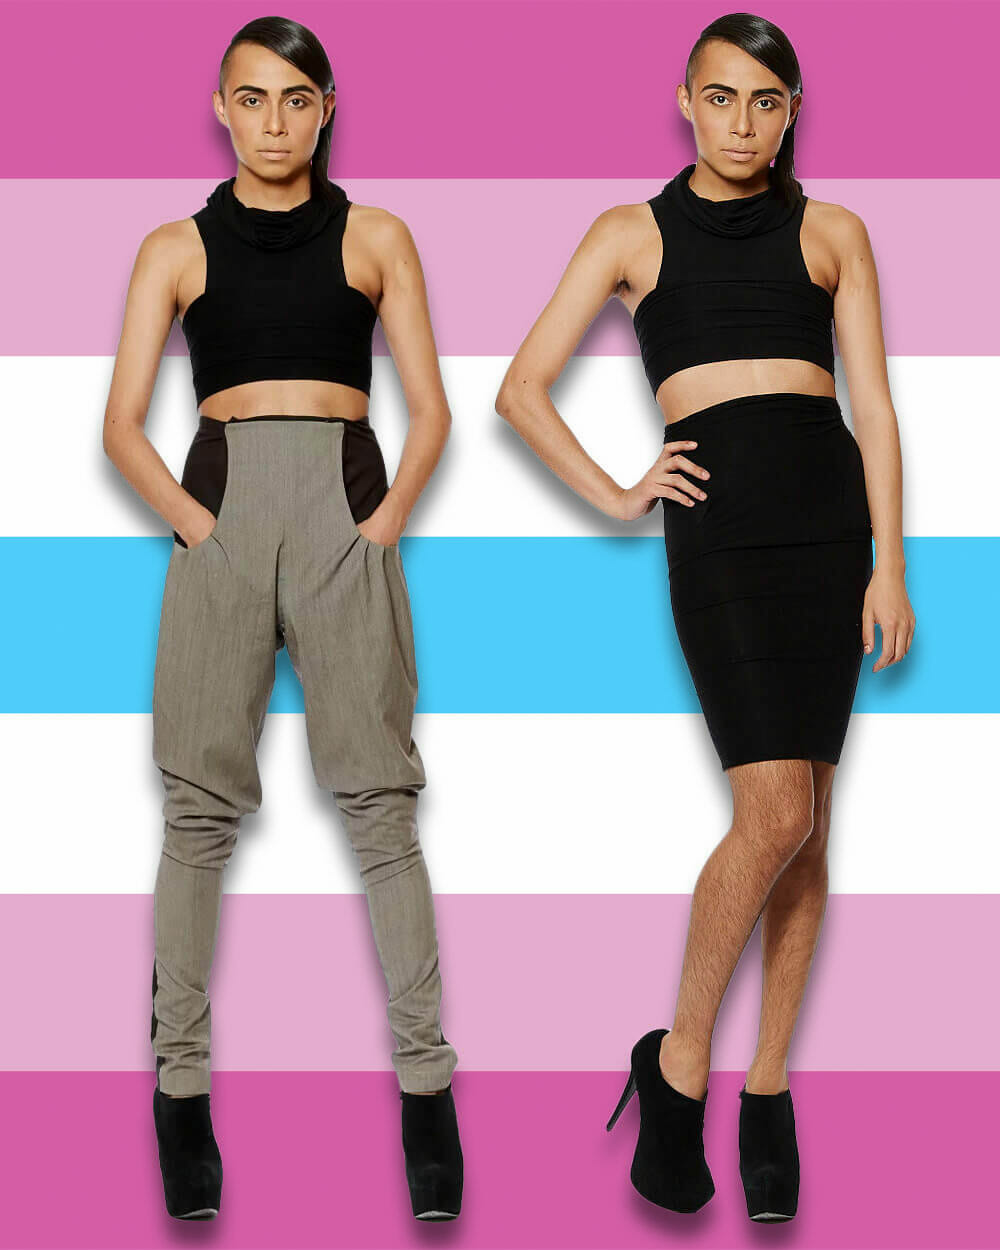 Femboy-Outfits Cilium Tank Top